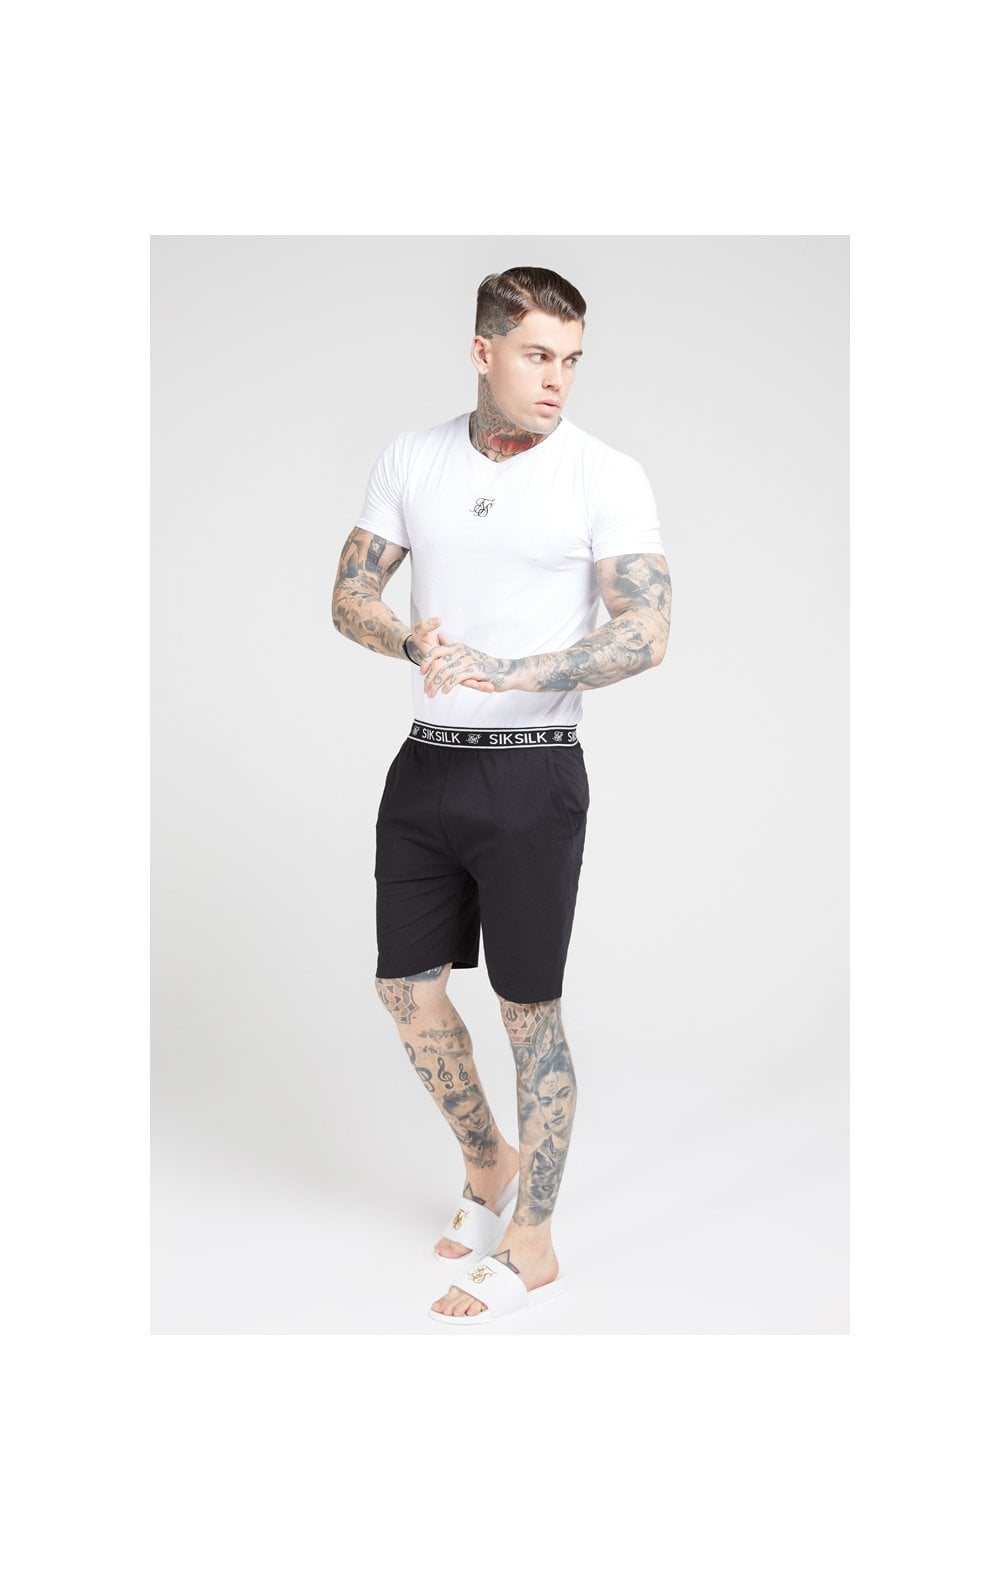 Load image into Gallery viewer, SikSilk Lounge Tee - White & Navy (2 Pack) - 1 White Tee & 1 Navy Tee (4)